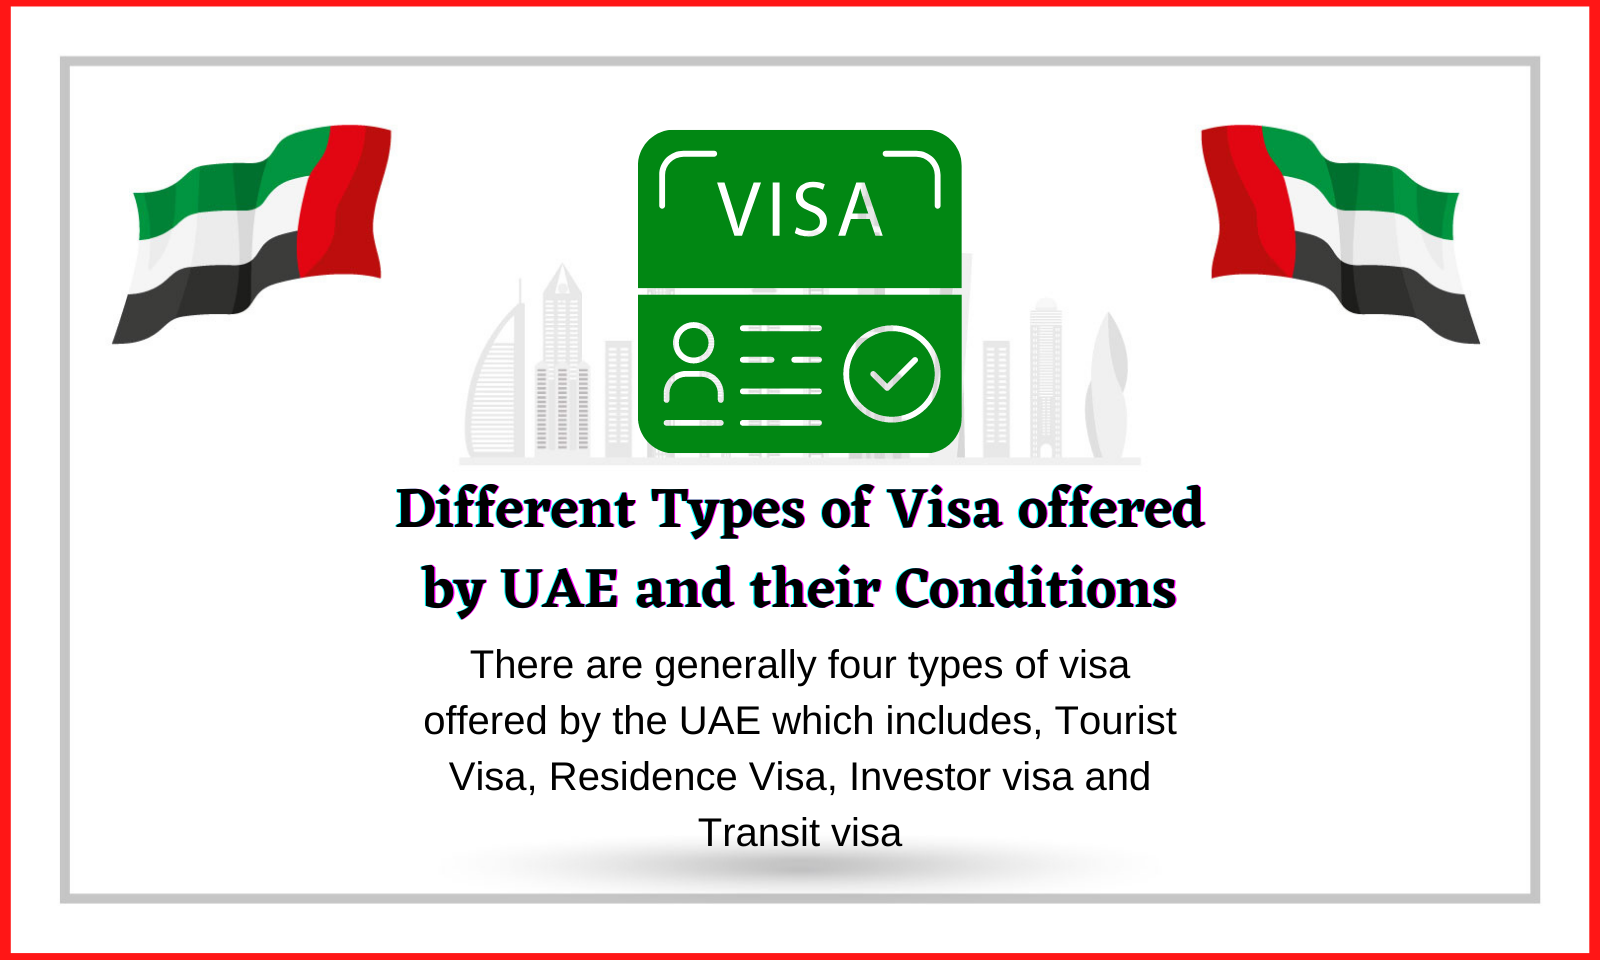 UAE Offers different types of Visa